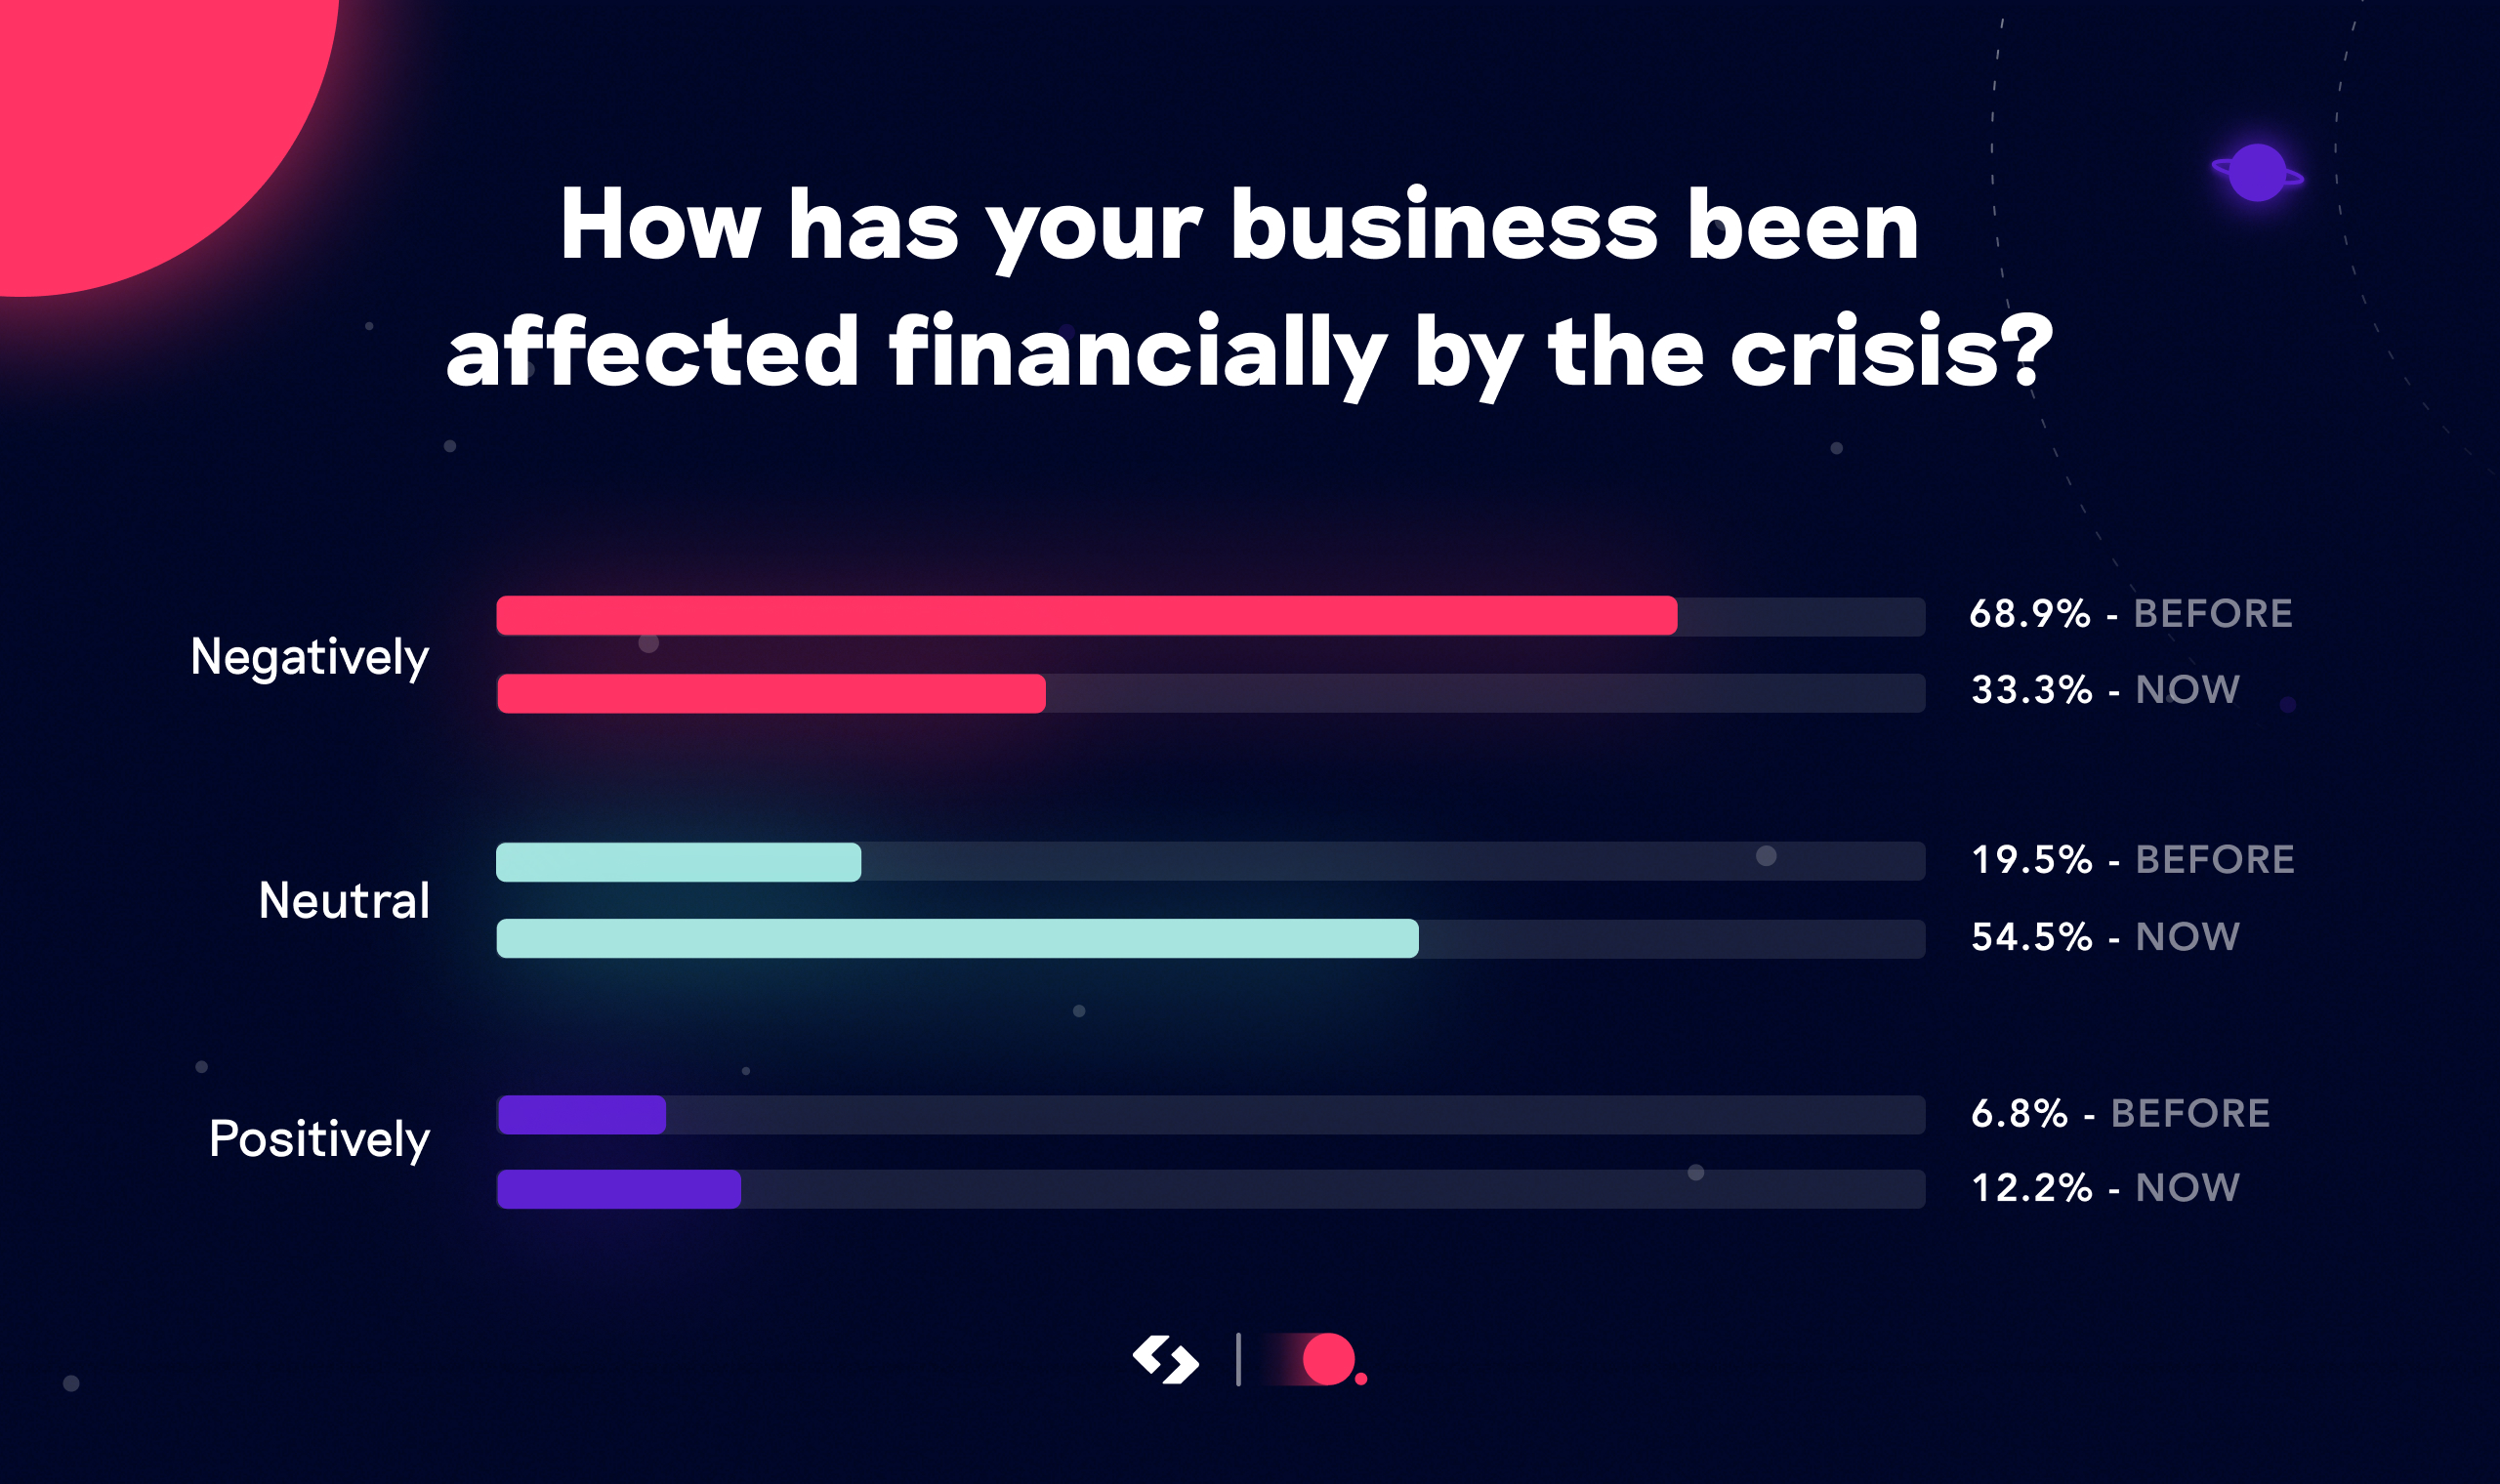 How has your business been affected?